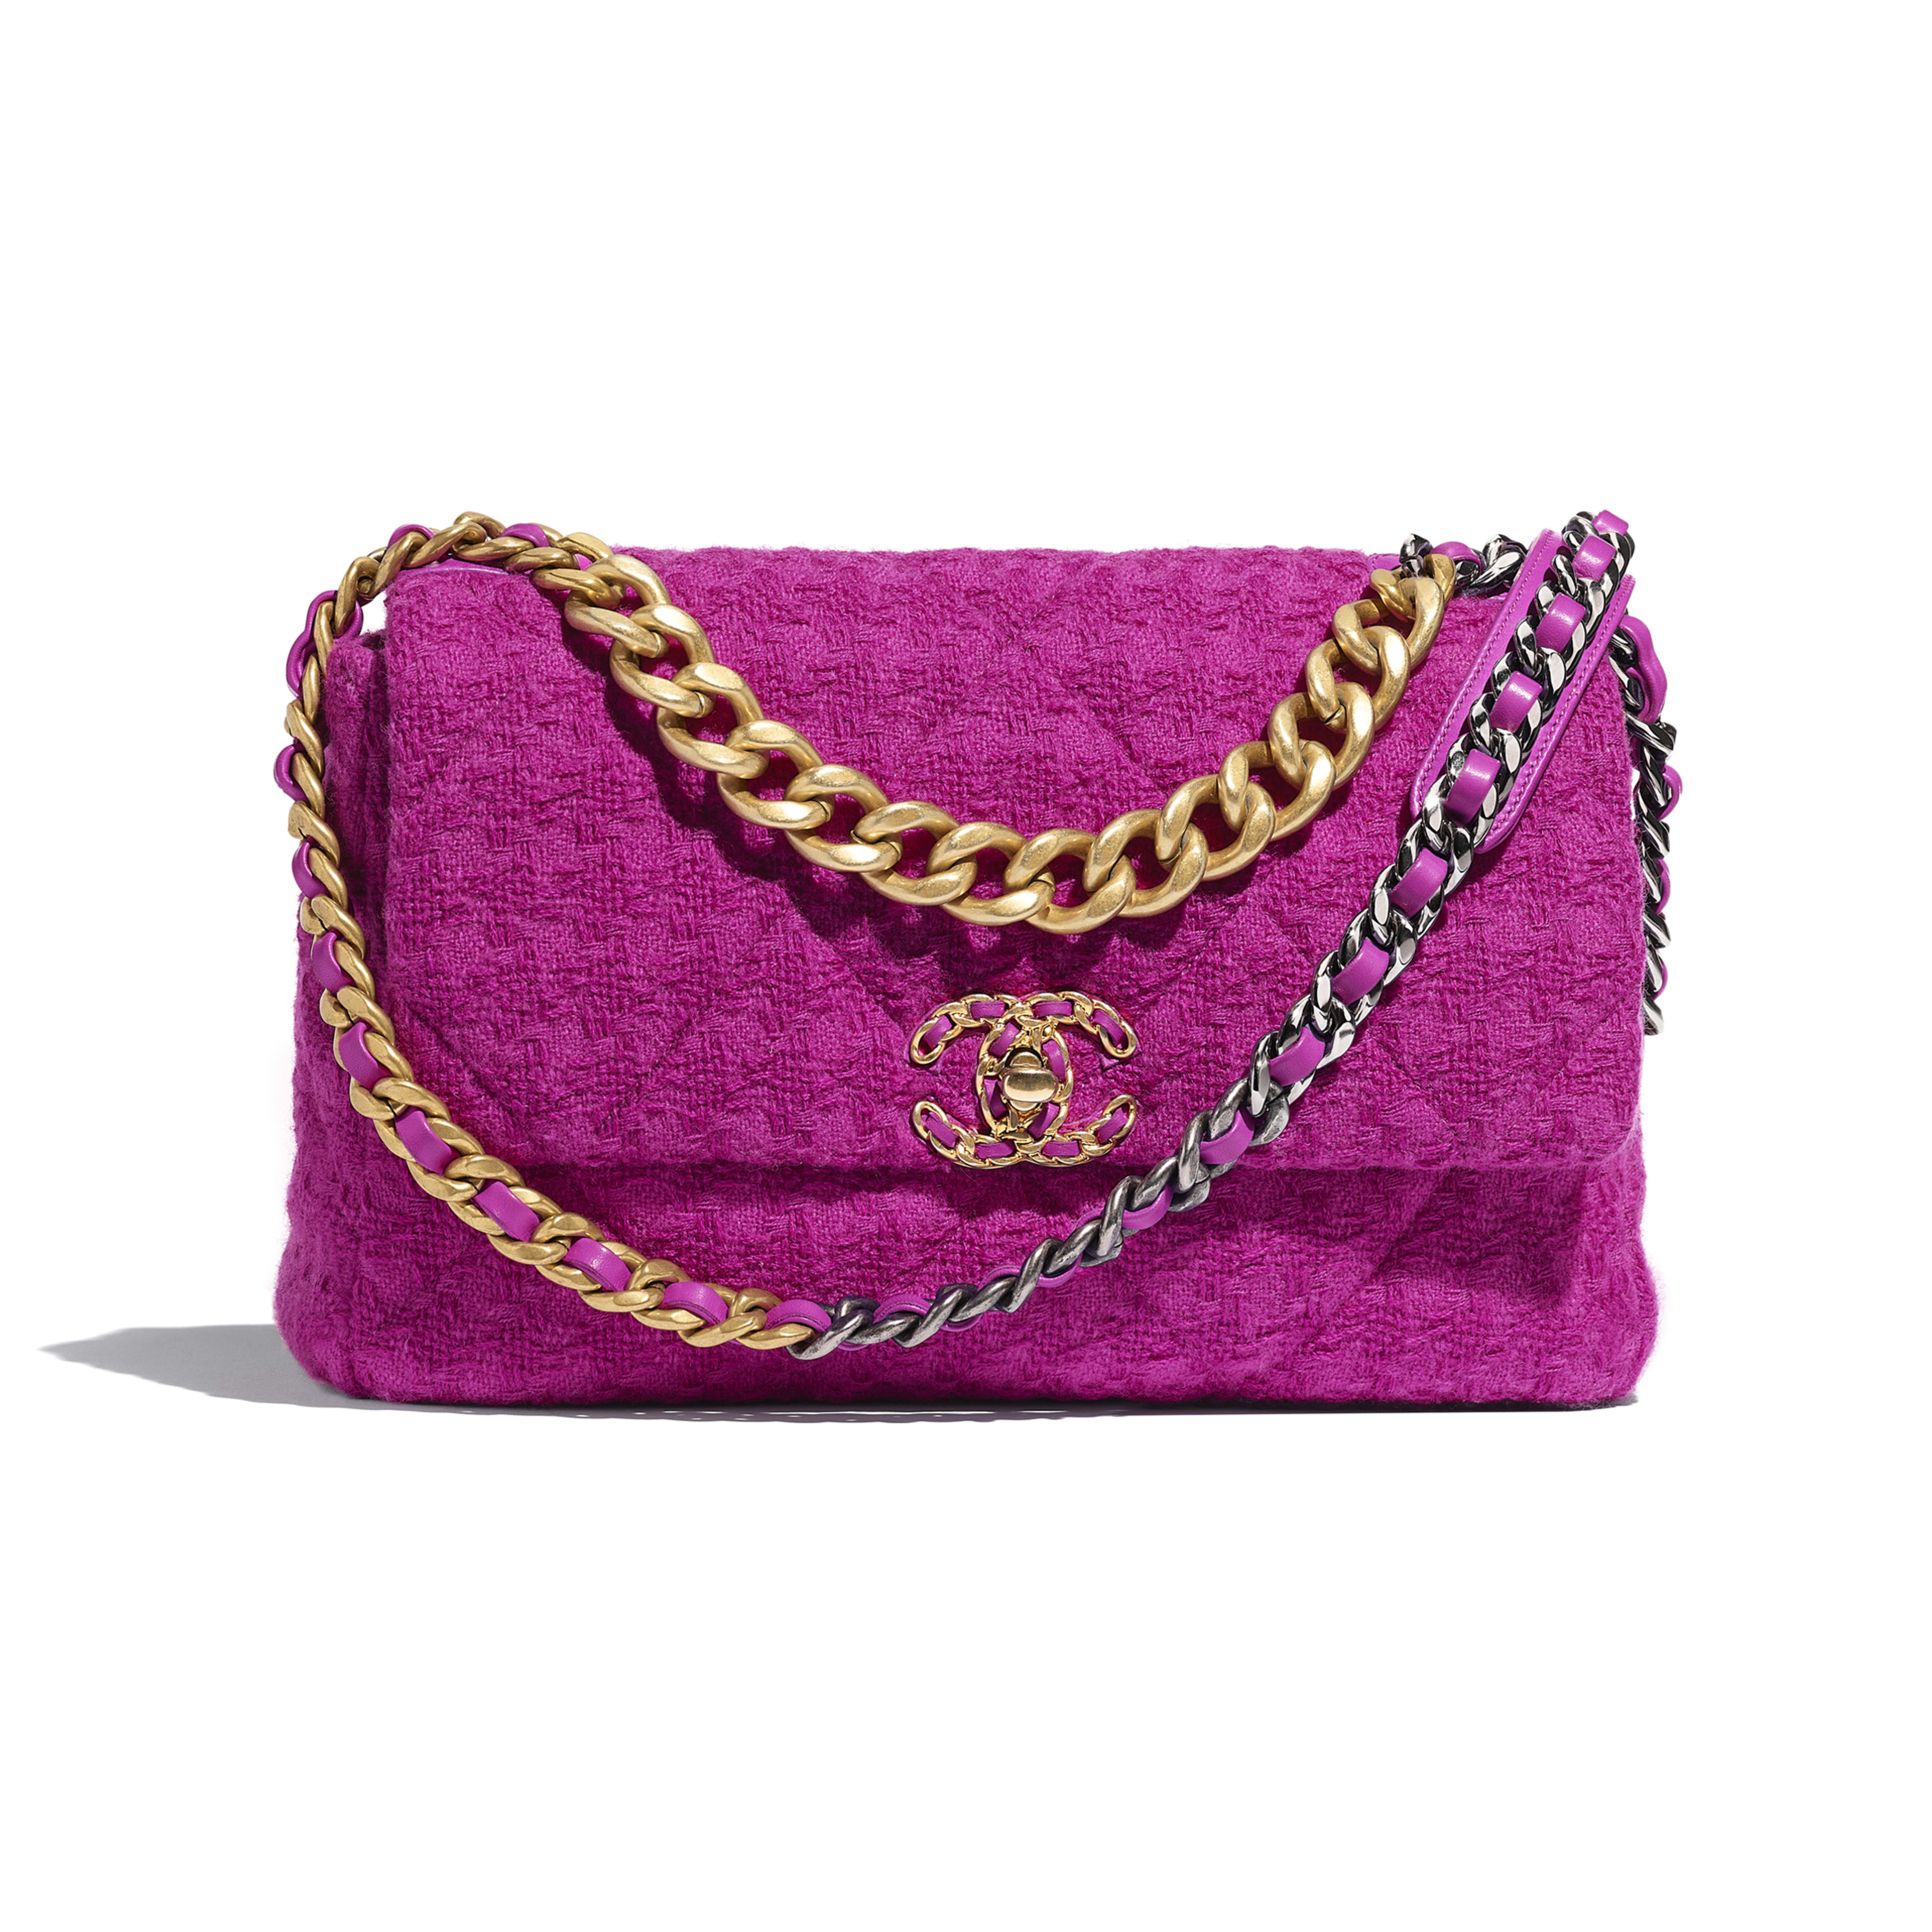 CHANEL 19 Large Flap Bag - Fuchsia - Wool Tweed, Gold-Tone, Silver-Tone & Ruthenium-Finish Metal - Default view - see full sized version